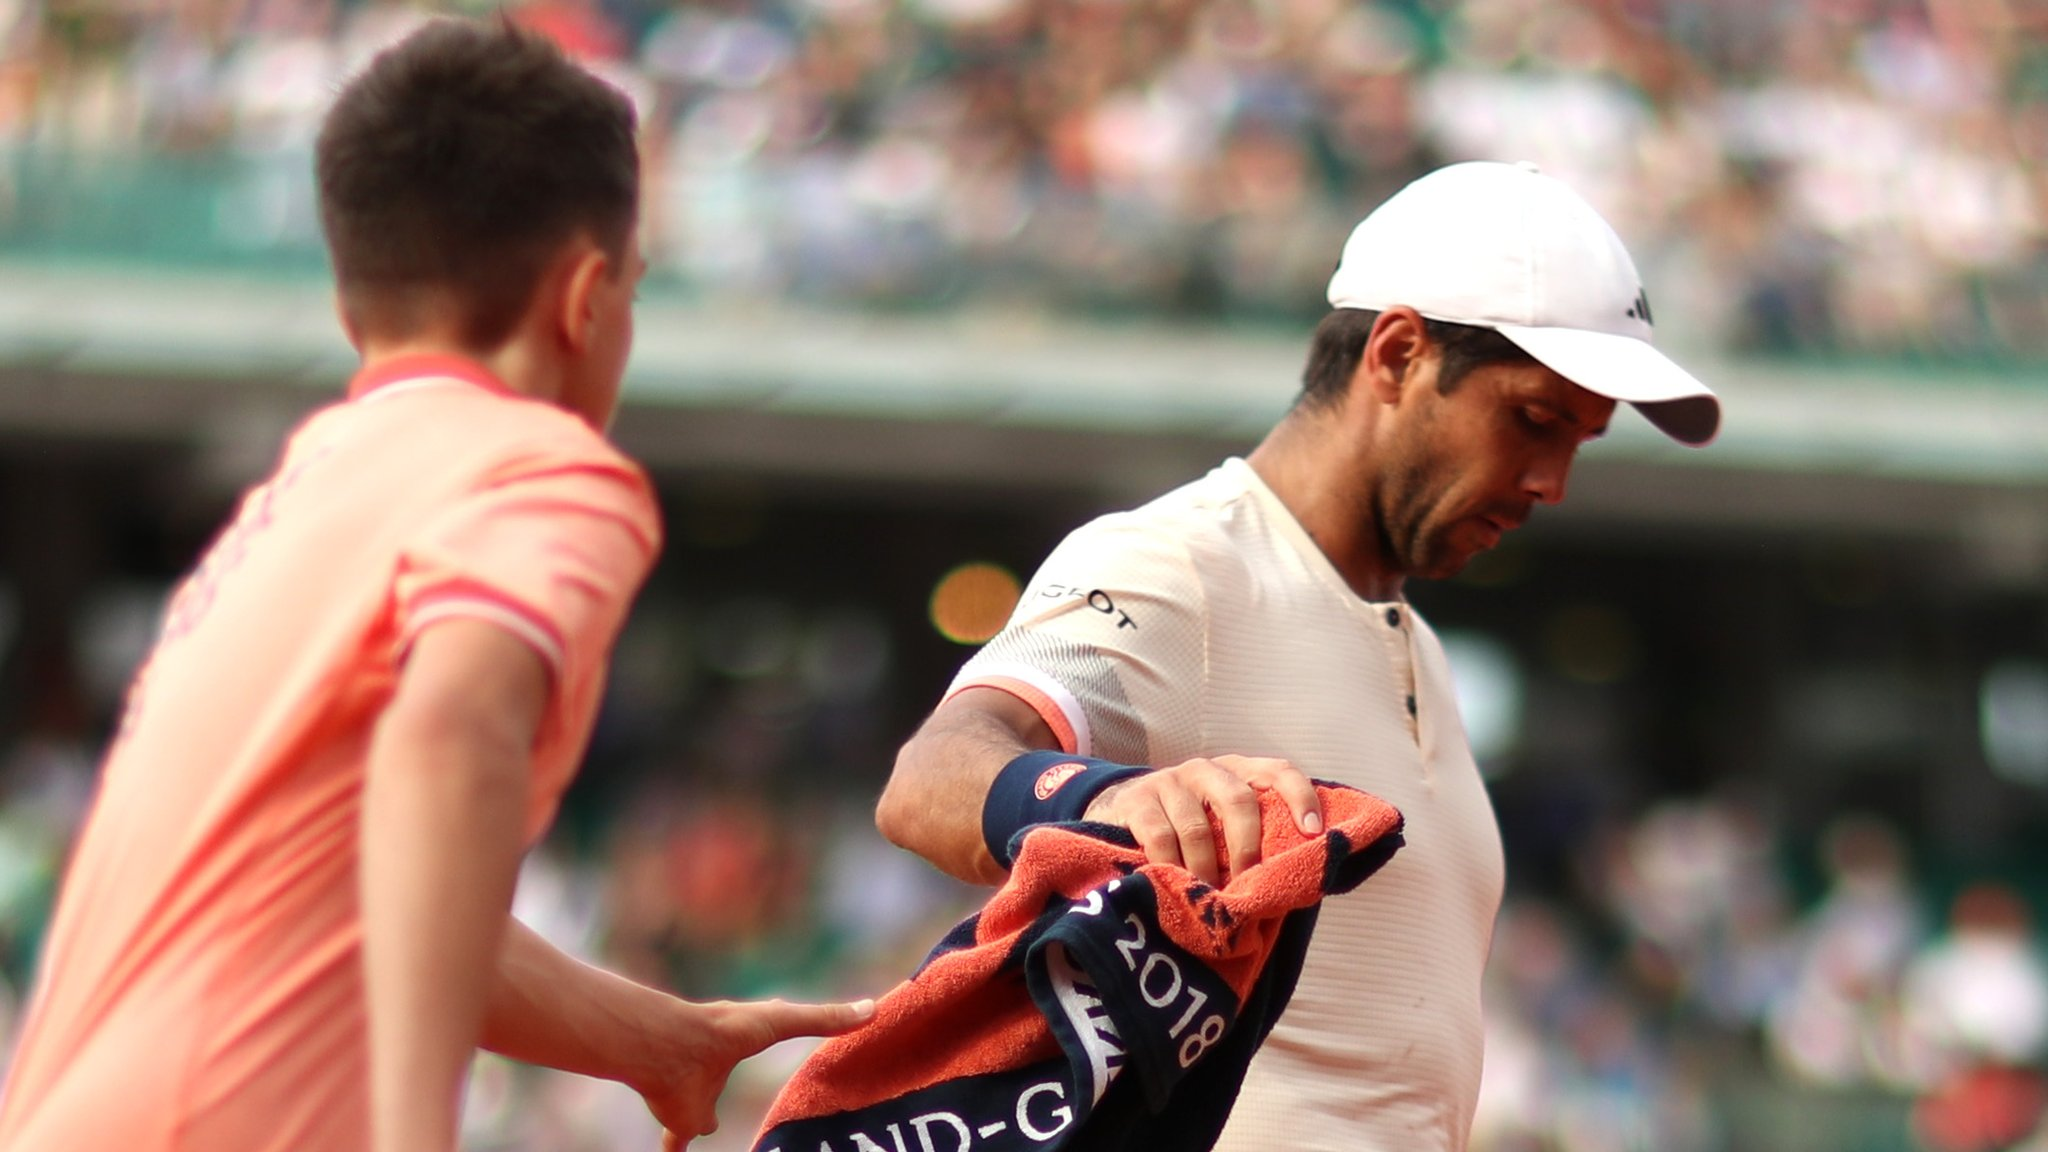 Wimbledon chief warns players on respect after Verdasco incident